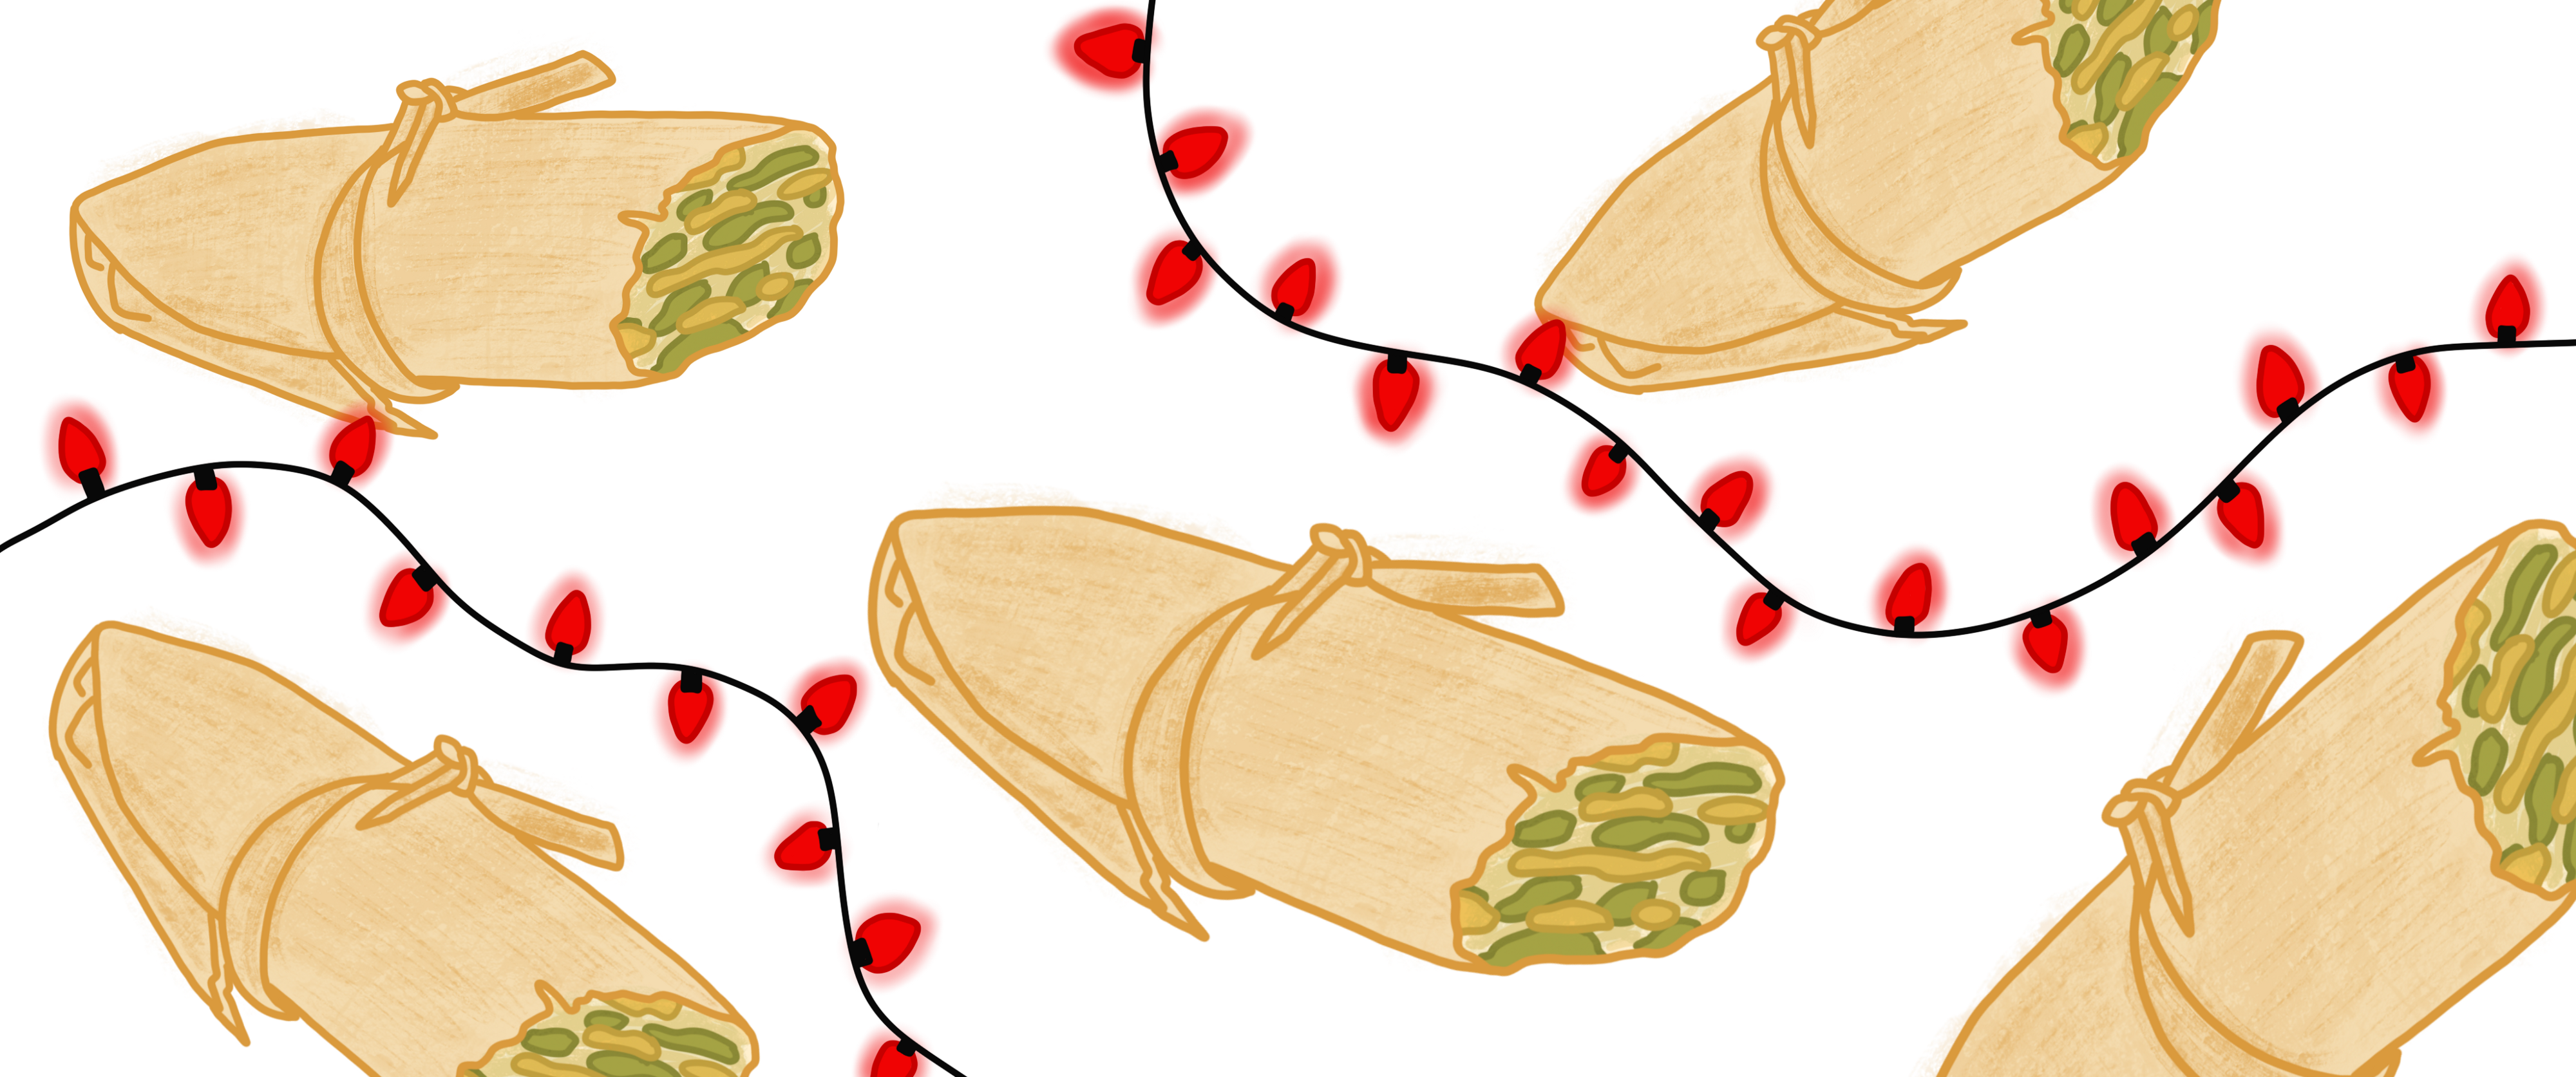 Five tamales verdes and two strands of red Christmas lights floating on a white background.